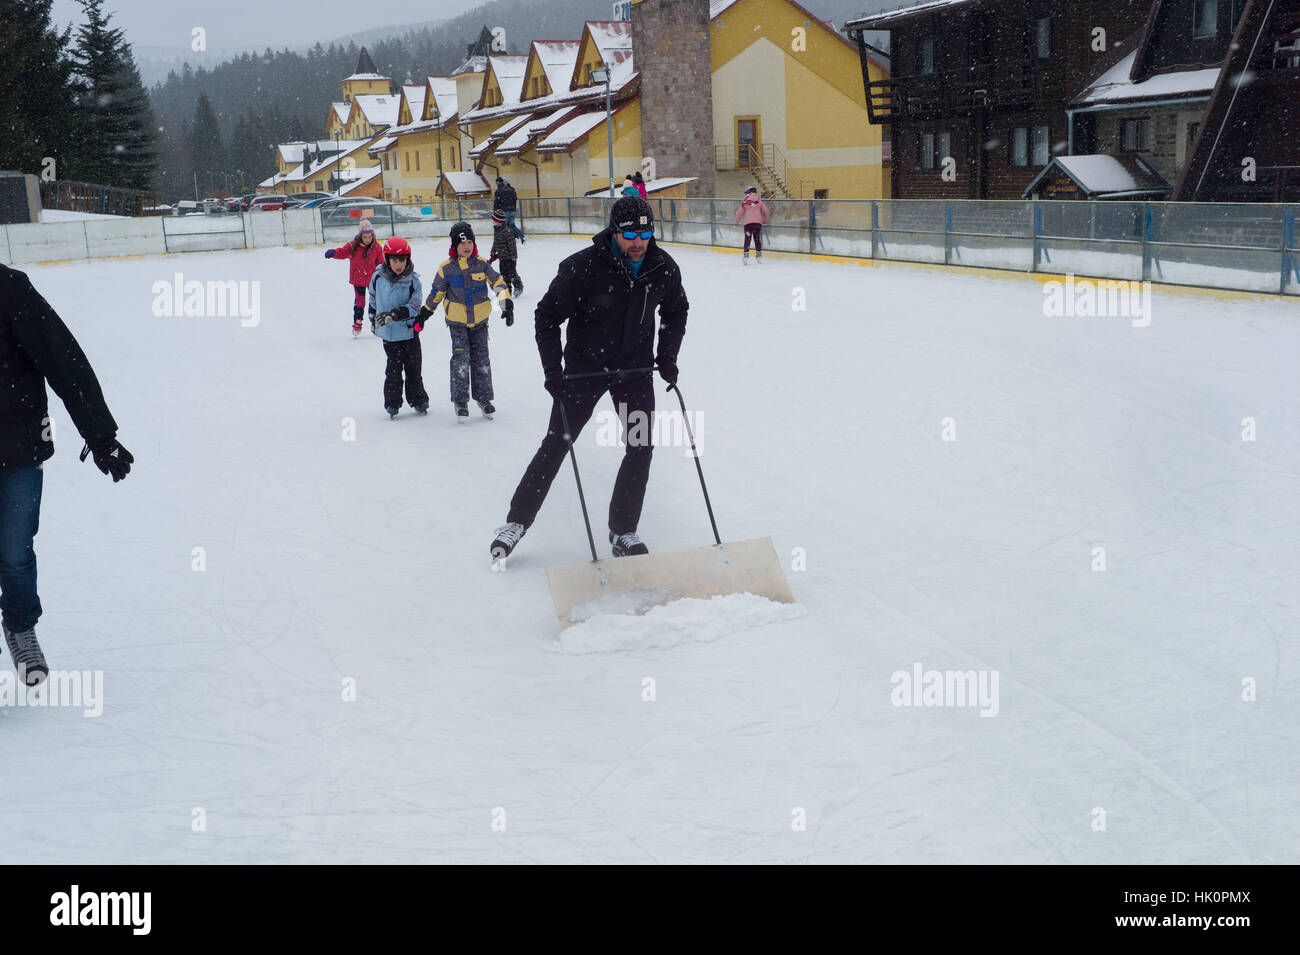 Clearing show from an outdoor ice skating rink in Donovaley, Nizke Tatry, Slovakia - Stock Image